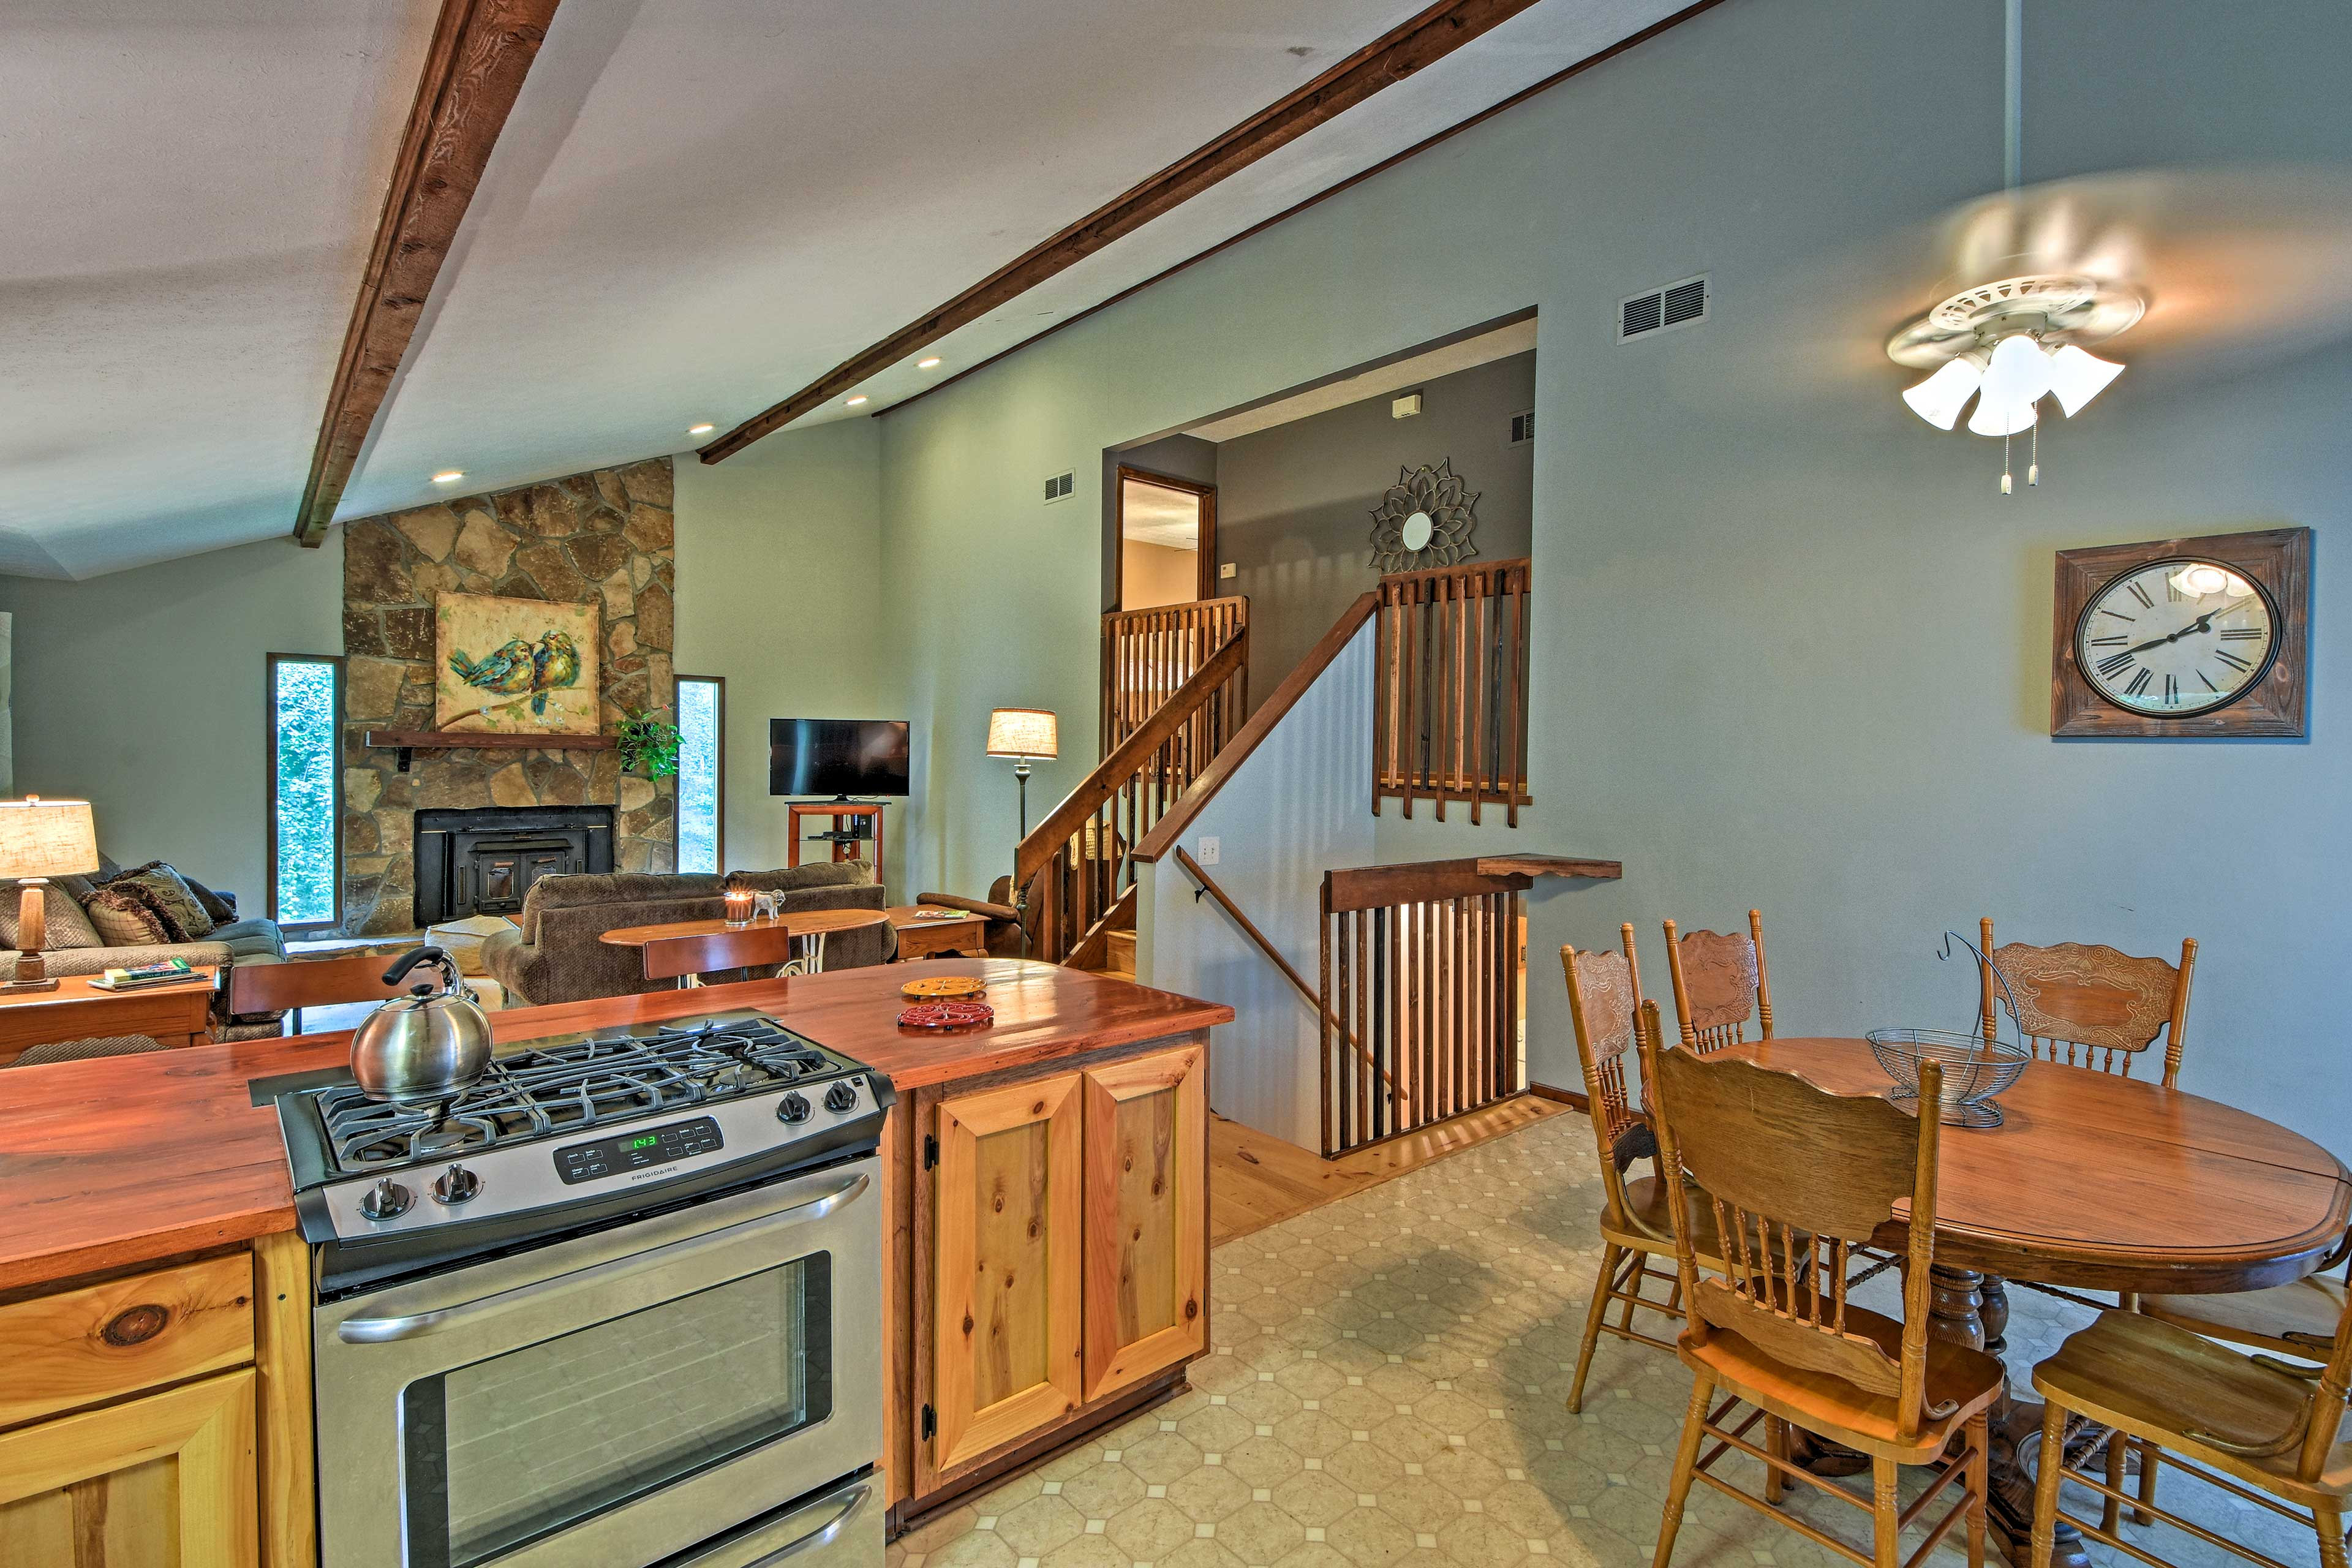 The wooden kitchen peninsula lets you chat with your group even while you cook!